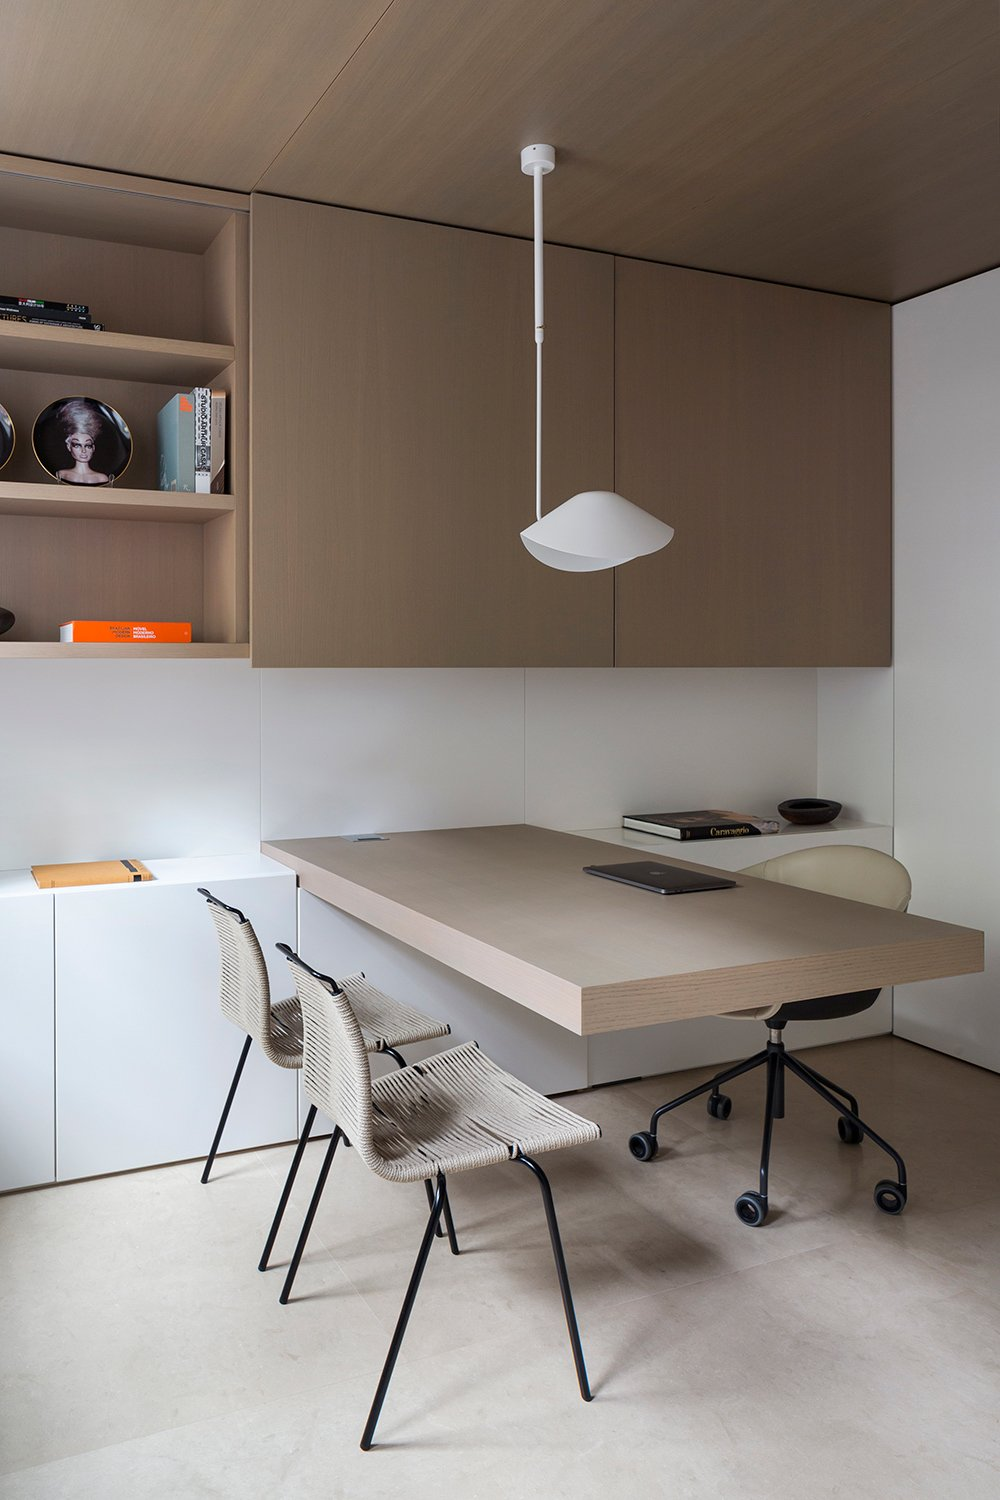 On the ground floor, the office is located right next to the entrance. Filippo Bamberghi